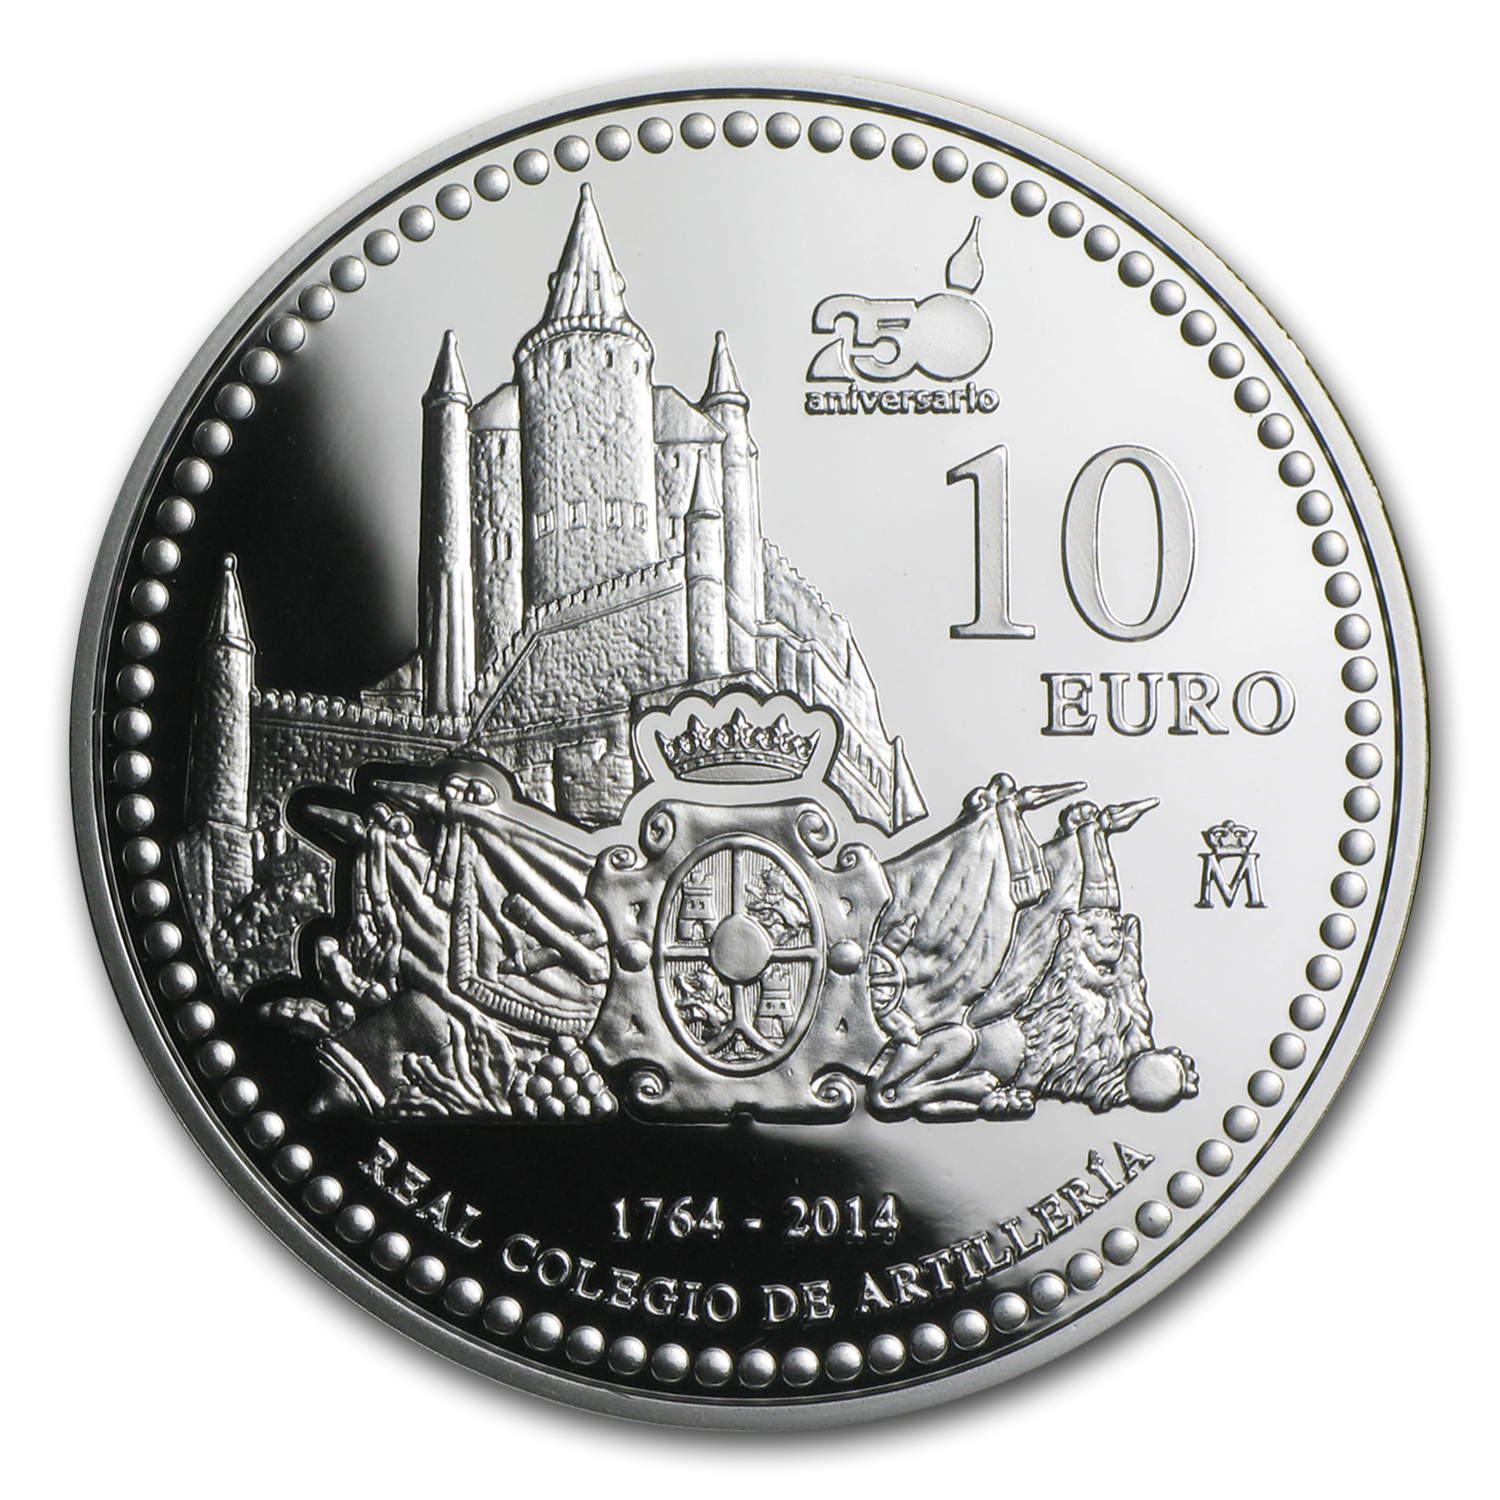 2014 Proof Silver €10 250th Anniv of Royal School of Artillery